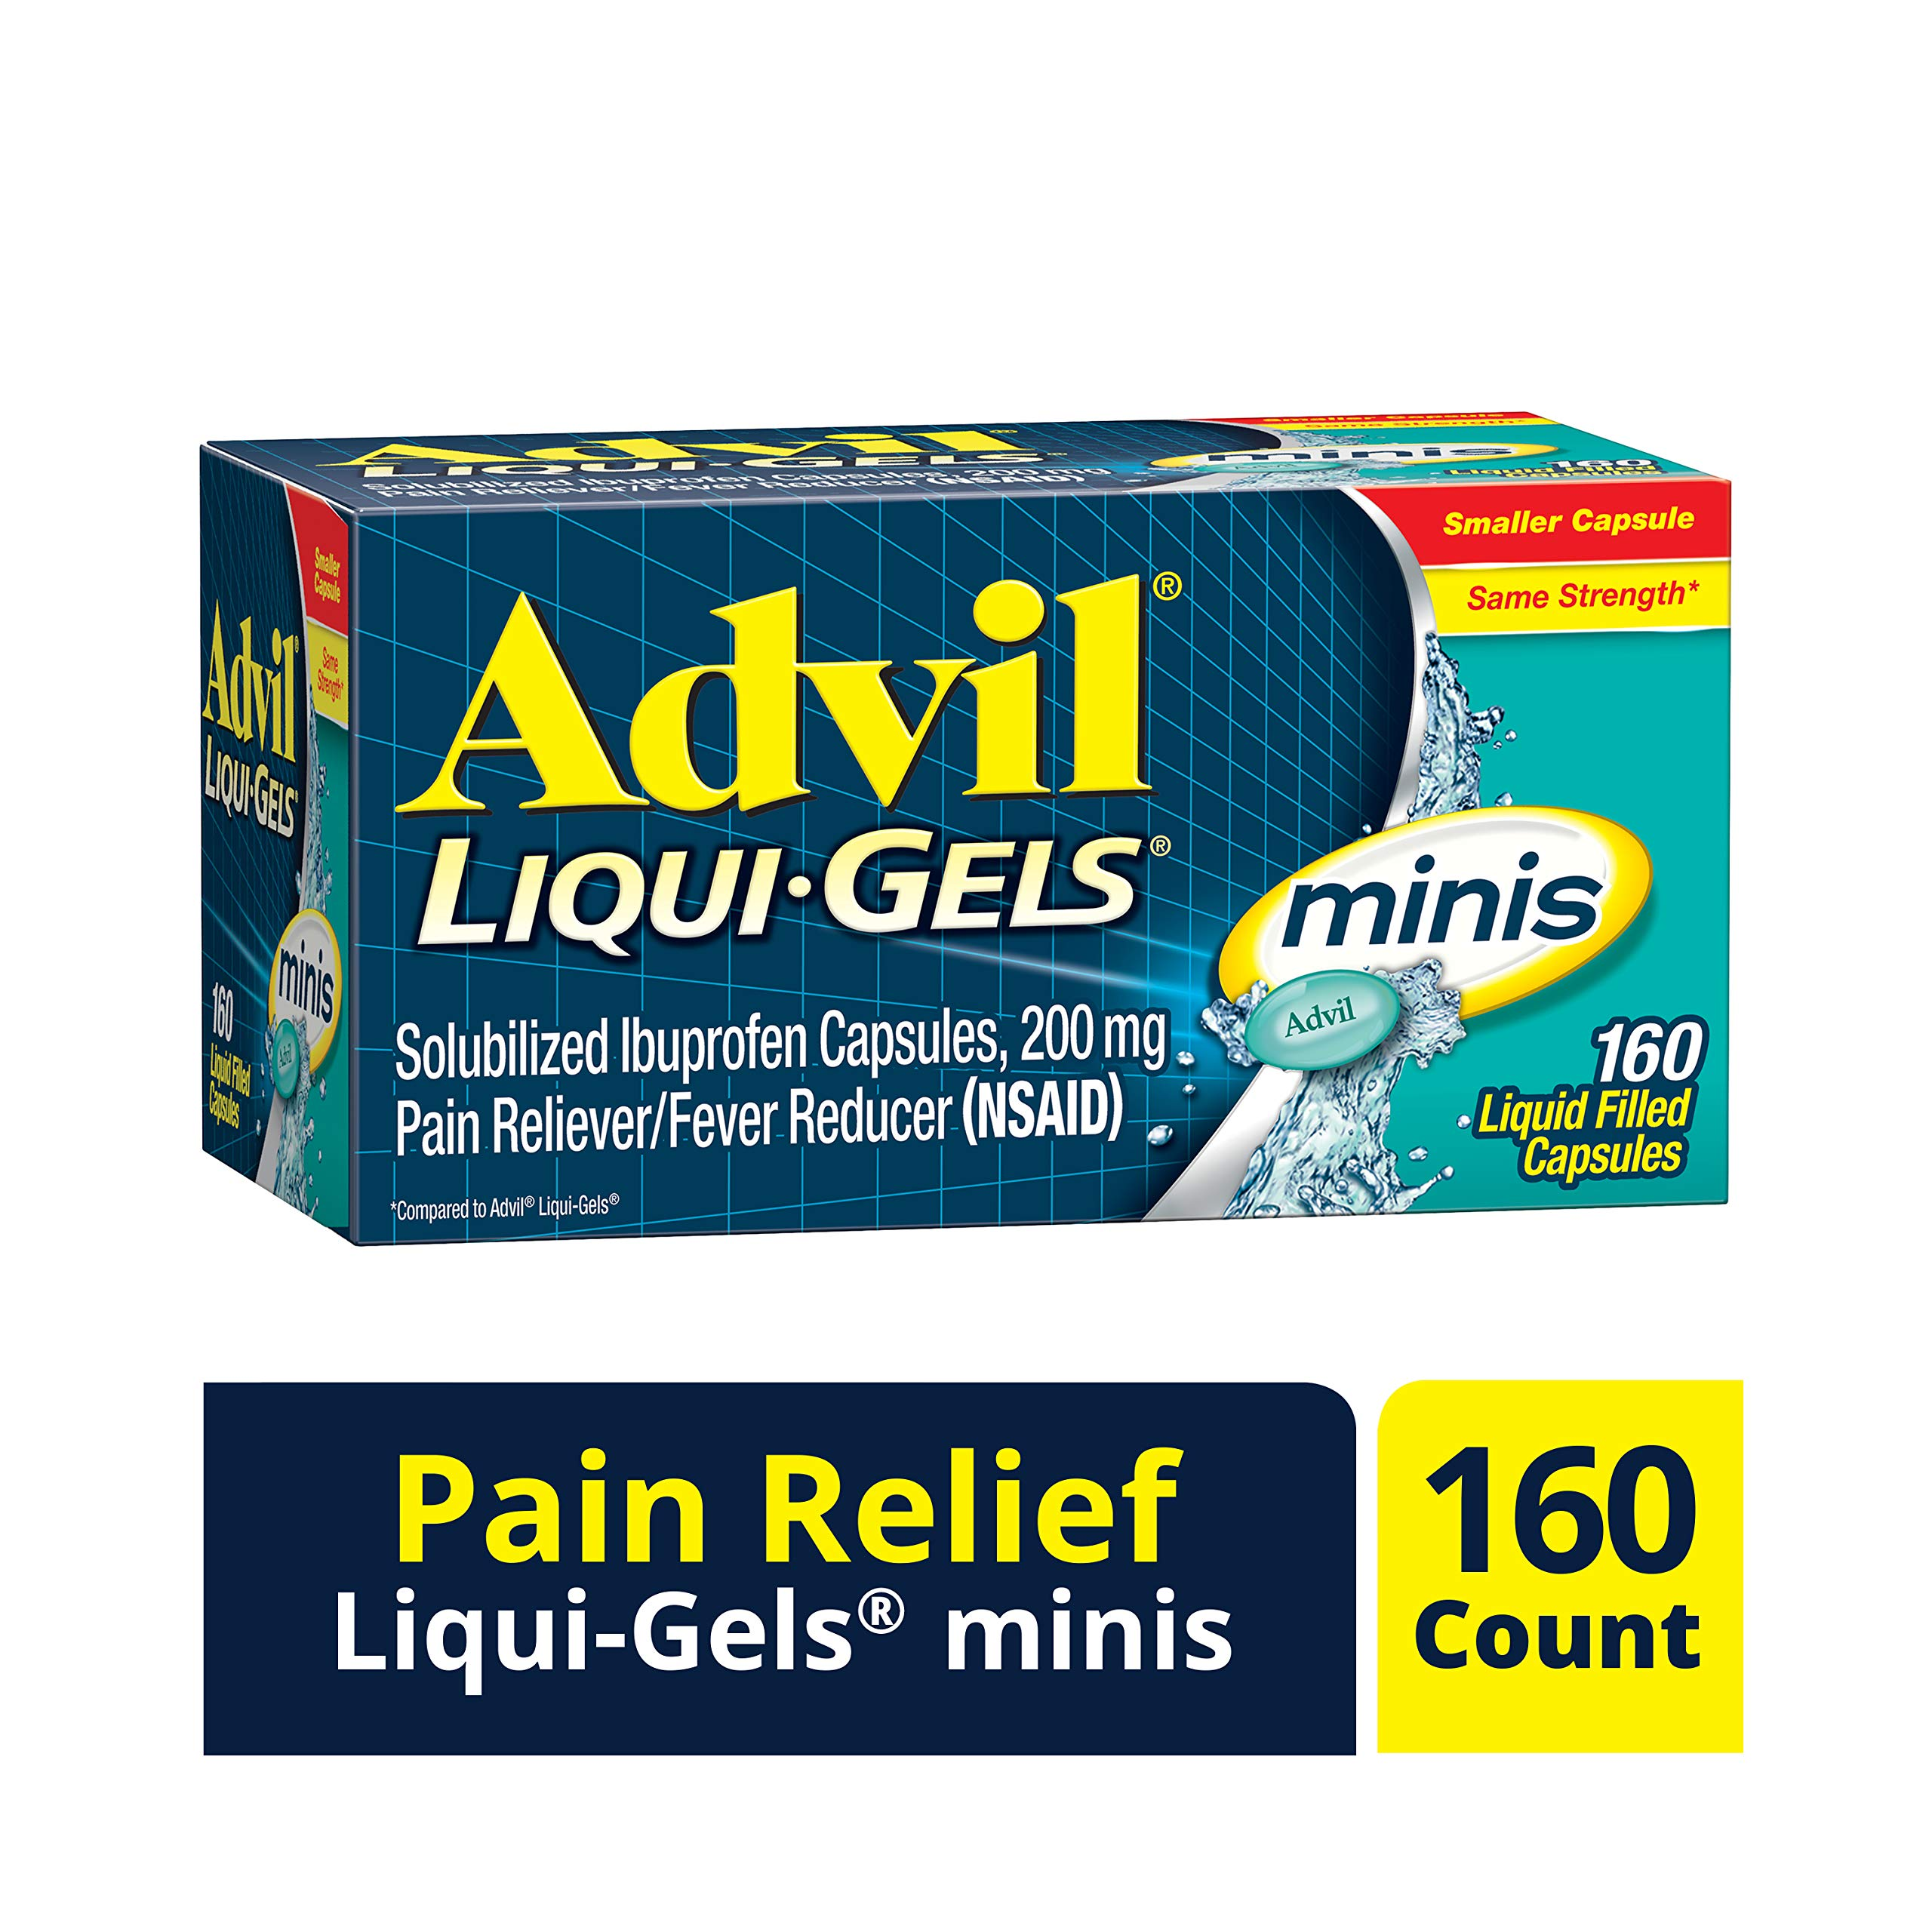 Advil Liqui-Gels Minis (160 Count) Pain Reliever/Fever Reducer Liquid Filled Capsule, Fast Pain Relief for Headaches, Back Pain, Muscle Pain, 200mg Ibuprofen, Easy to Swallow by Advil